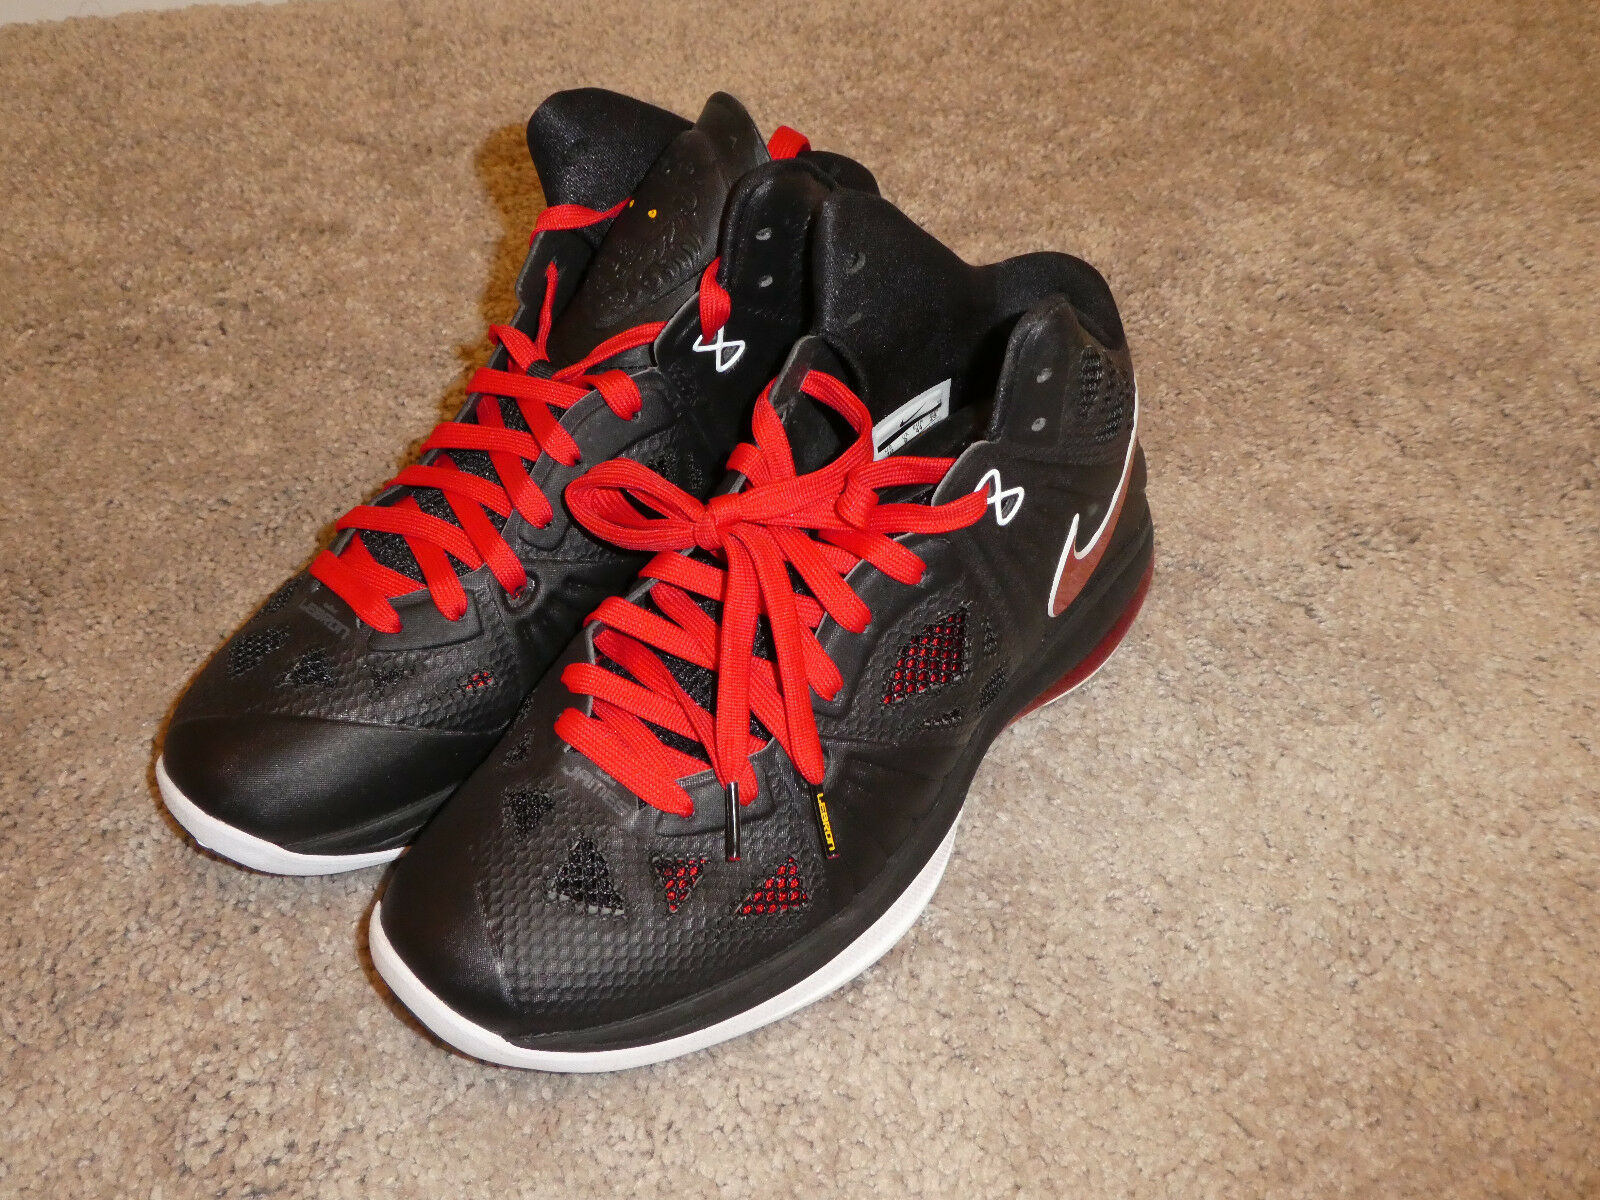 Nike Lebron 8 P.S. shoes mens new 441946 001 sneakers defect size 10